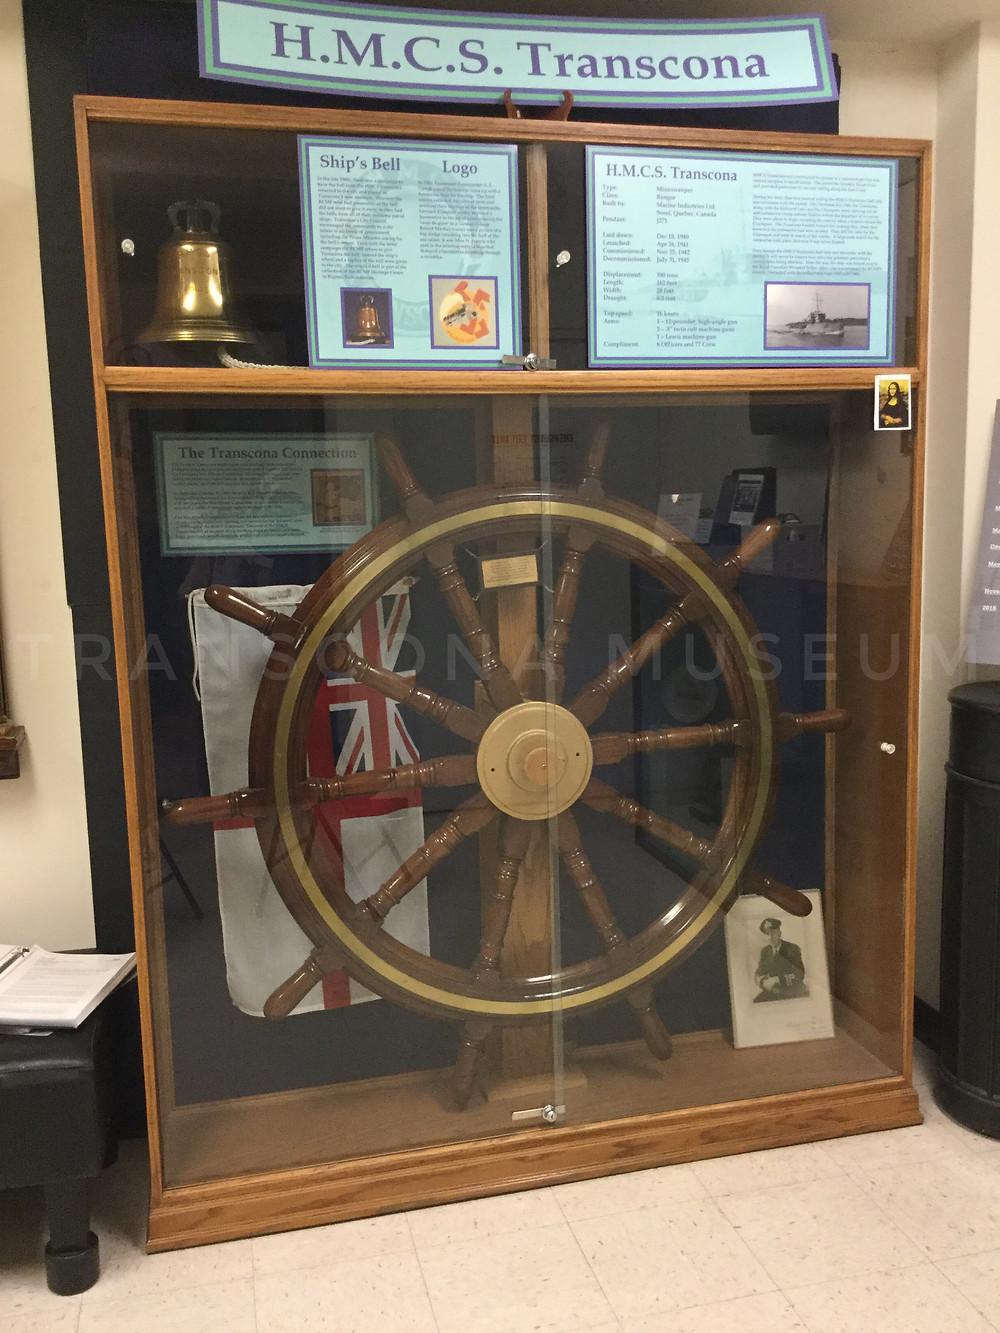 HMCS Wheel and Replica bell at Transcona Museum